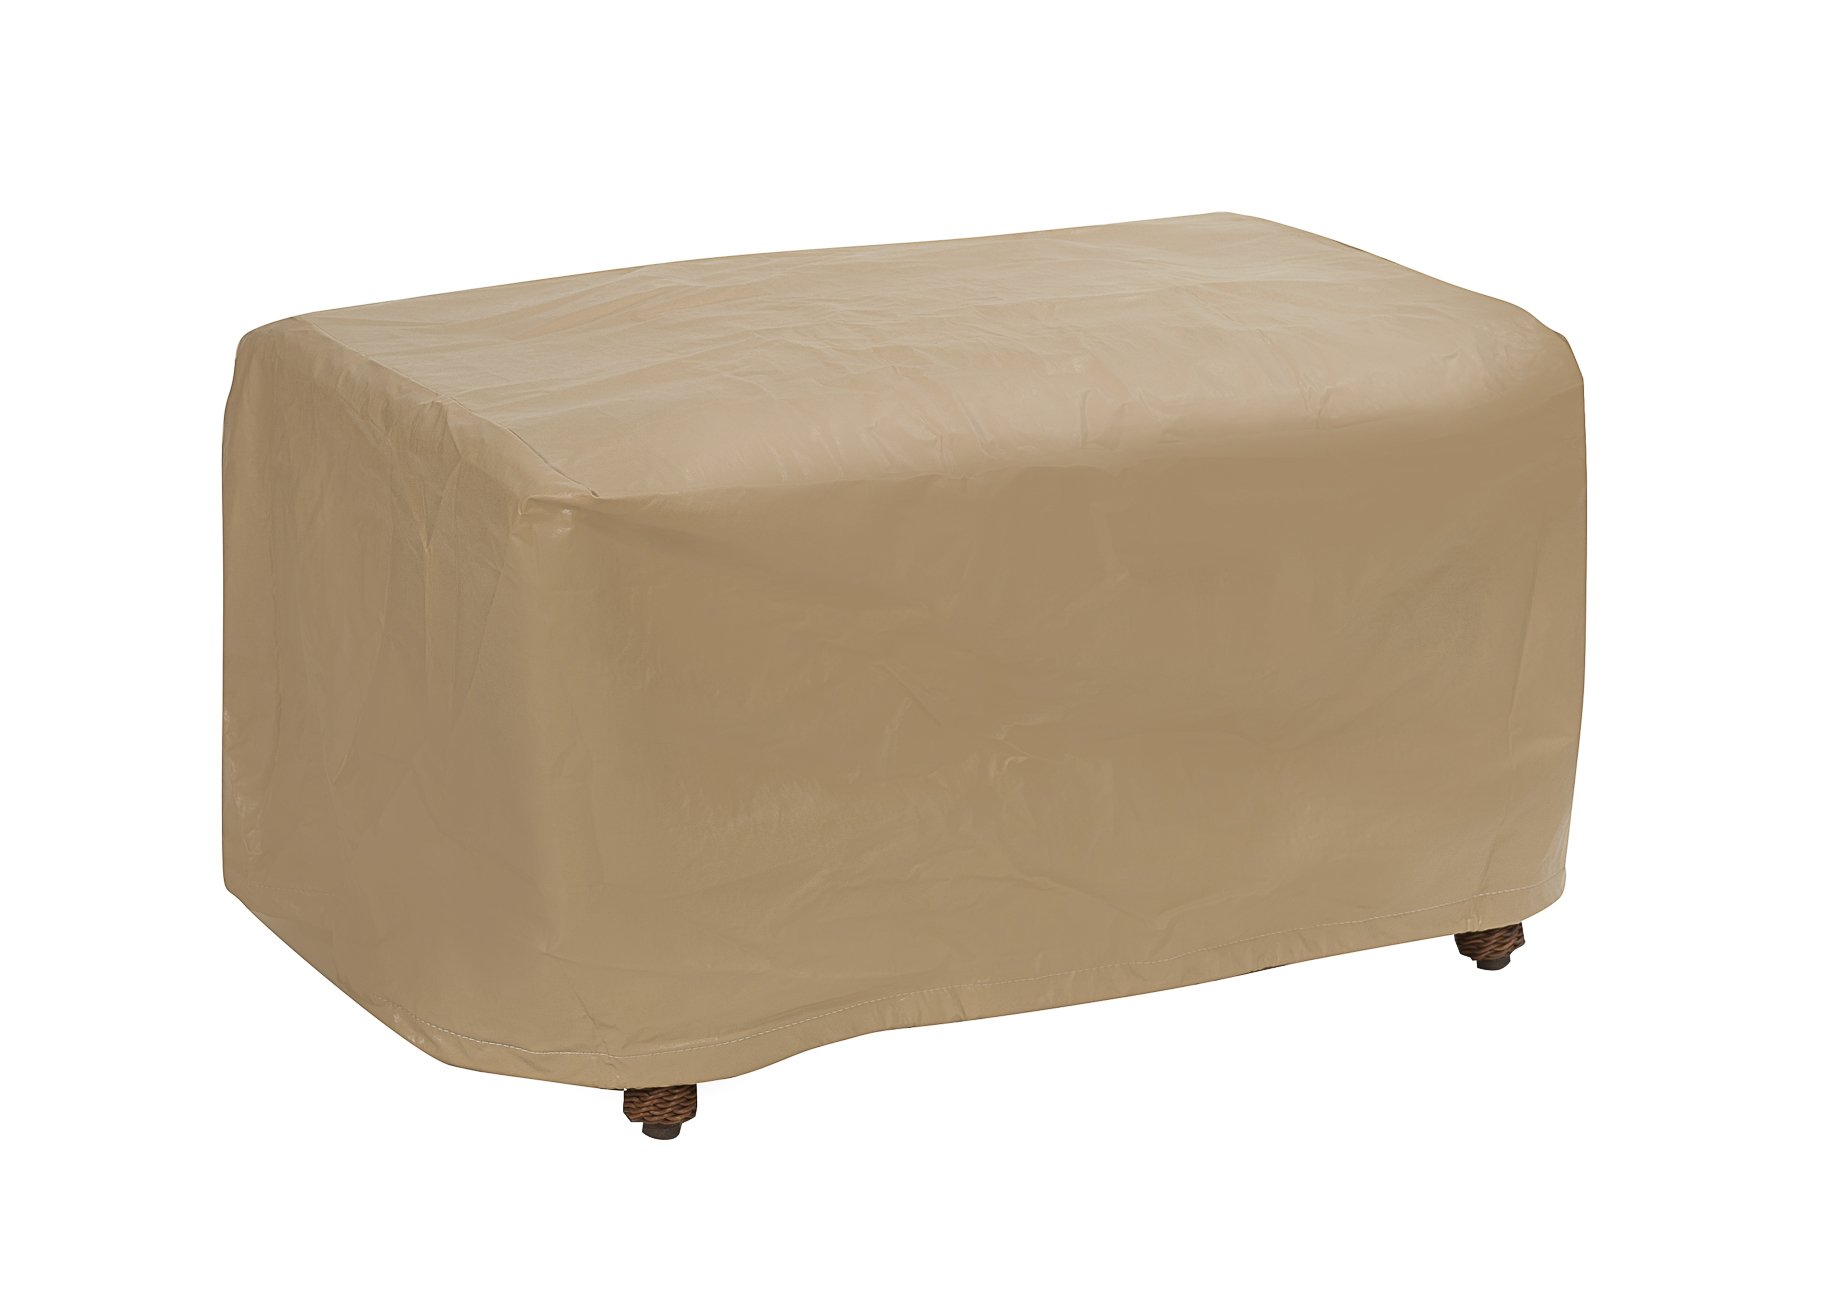 Protective Covers Weatherproof Ottoman Cover, Small, Tan by Protective Covers